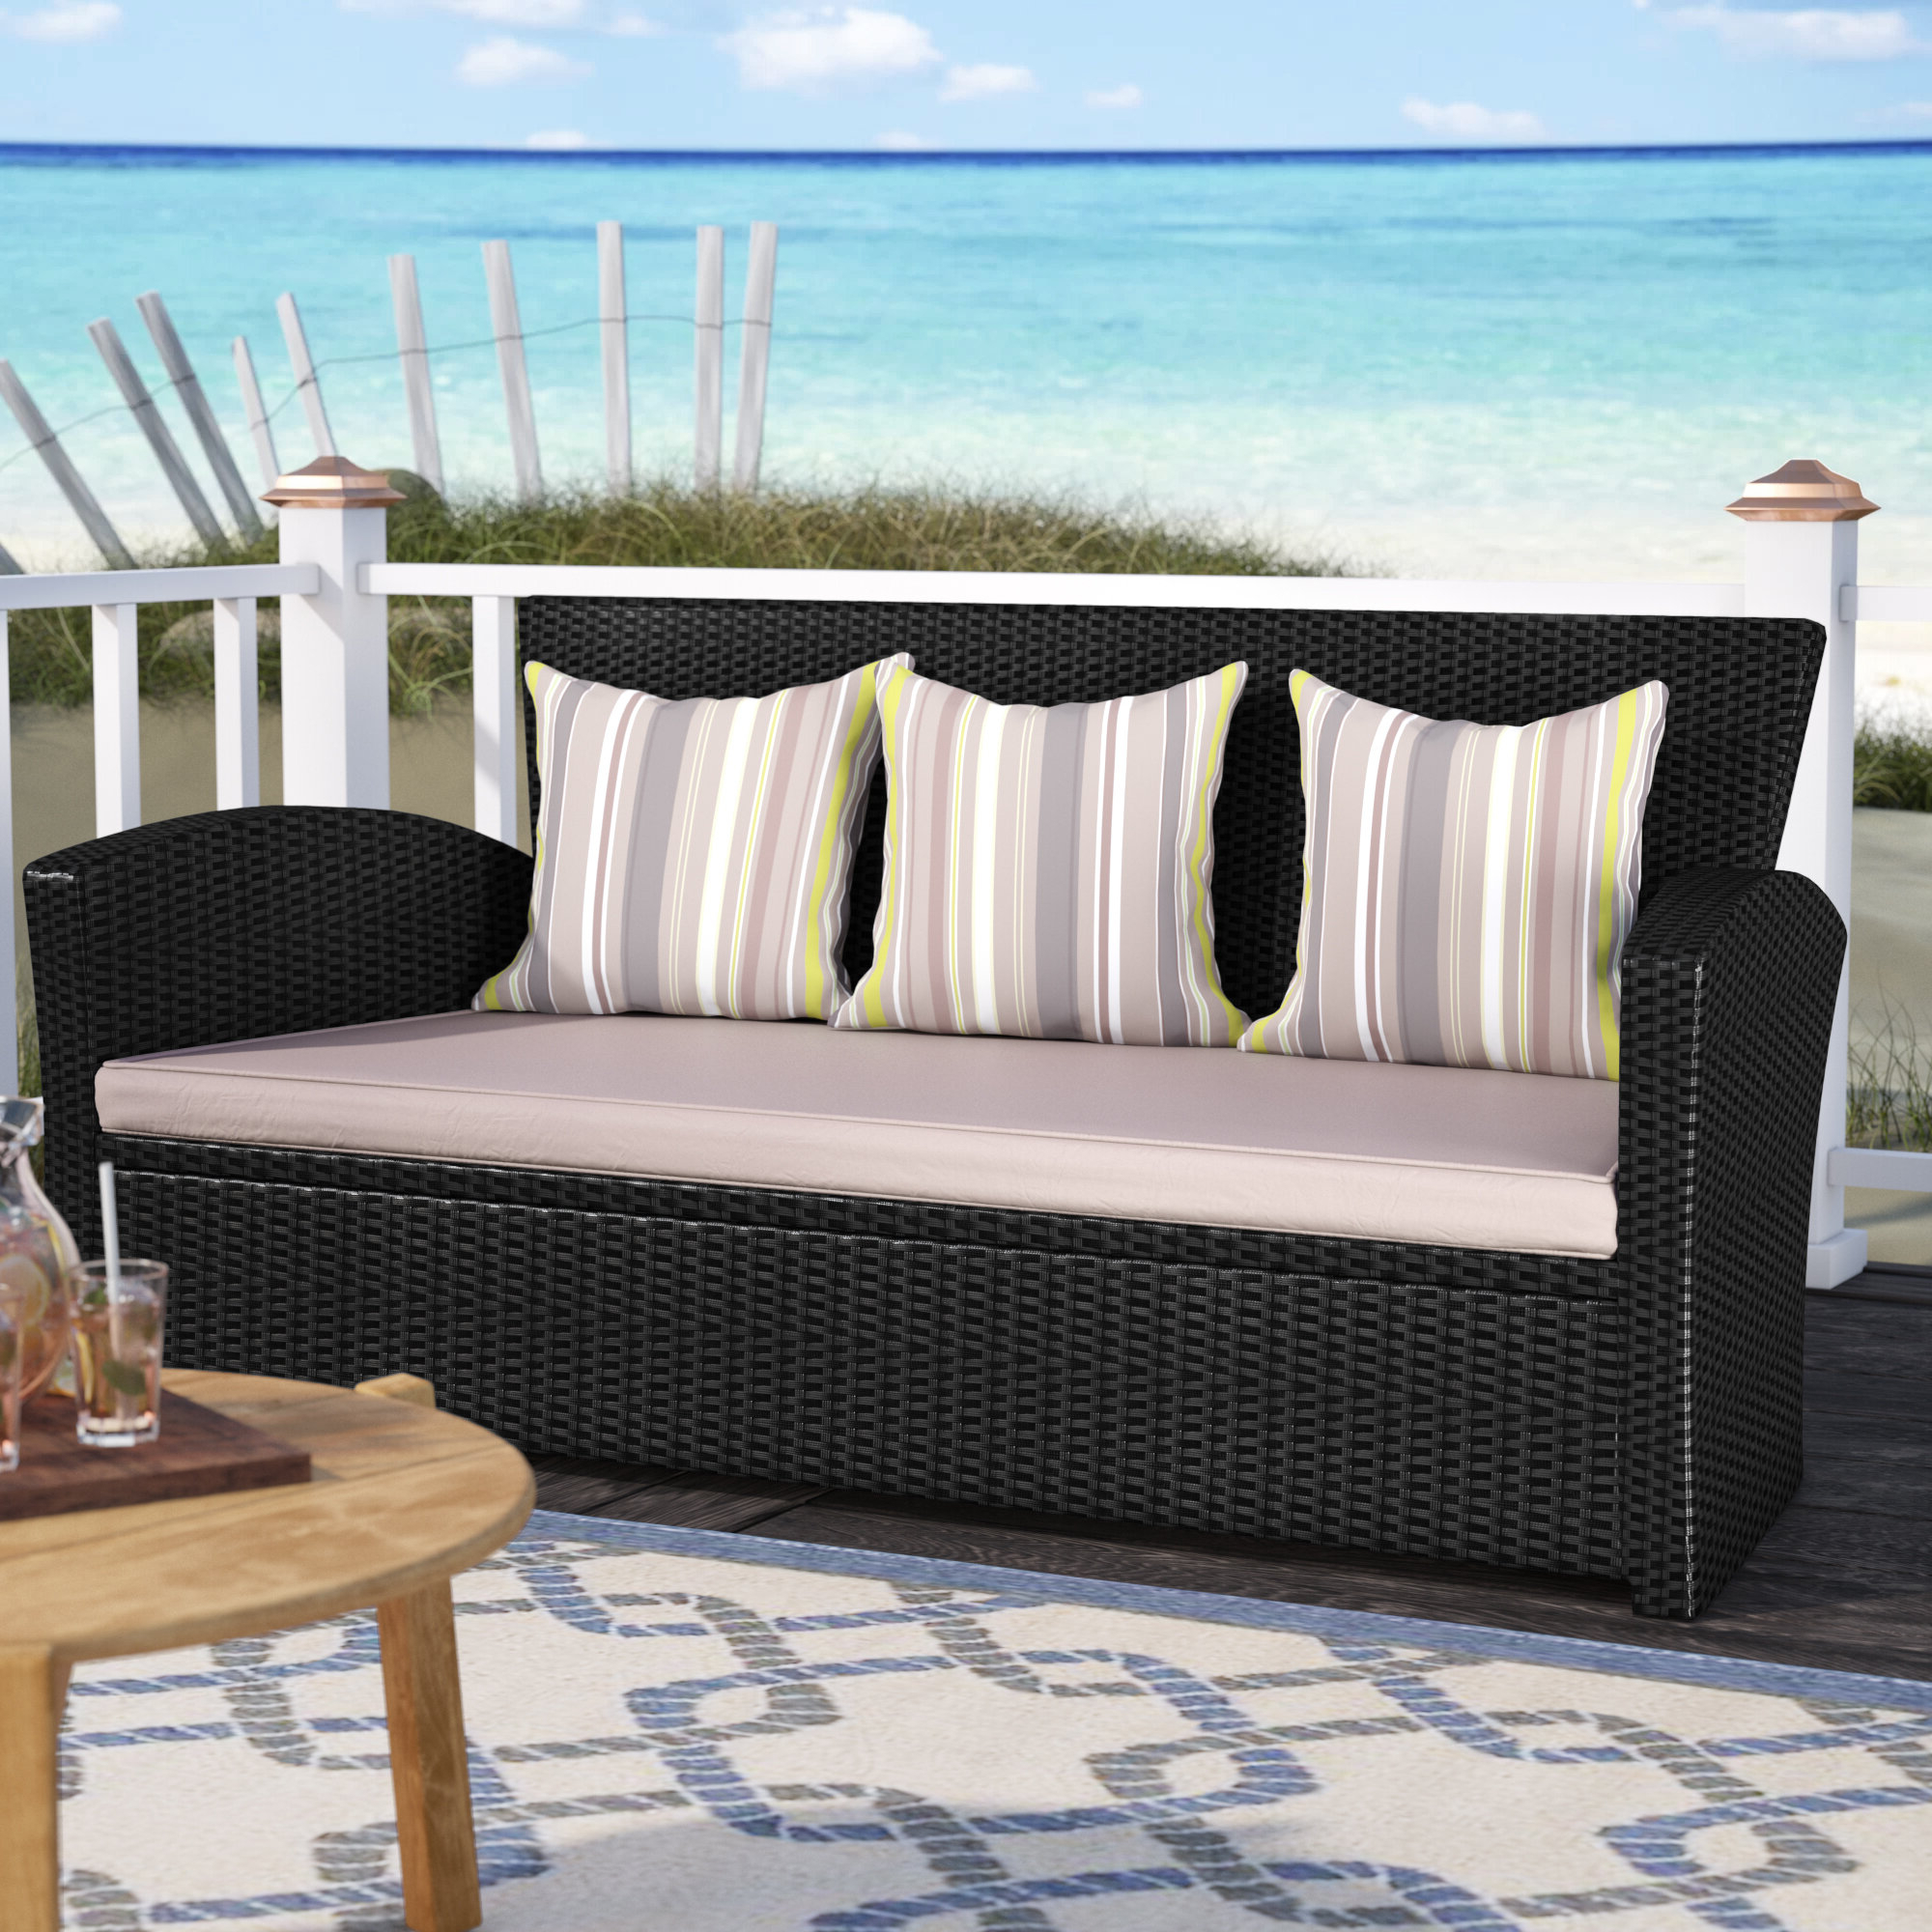 Favorite Valetta Patio Sofa With Cushions With Belton Patio Sofas With Cushions (View 8 of 25)